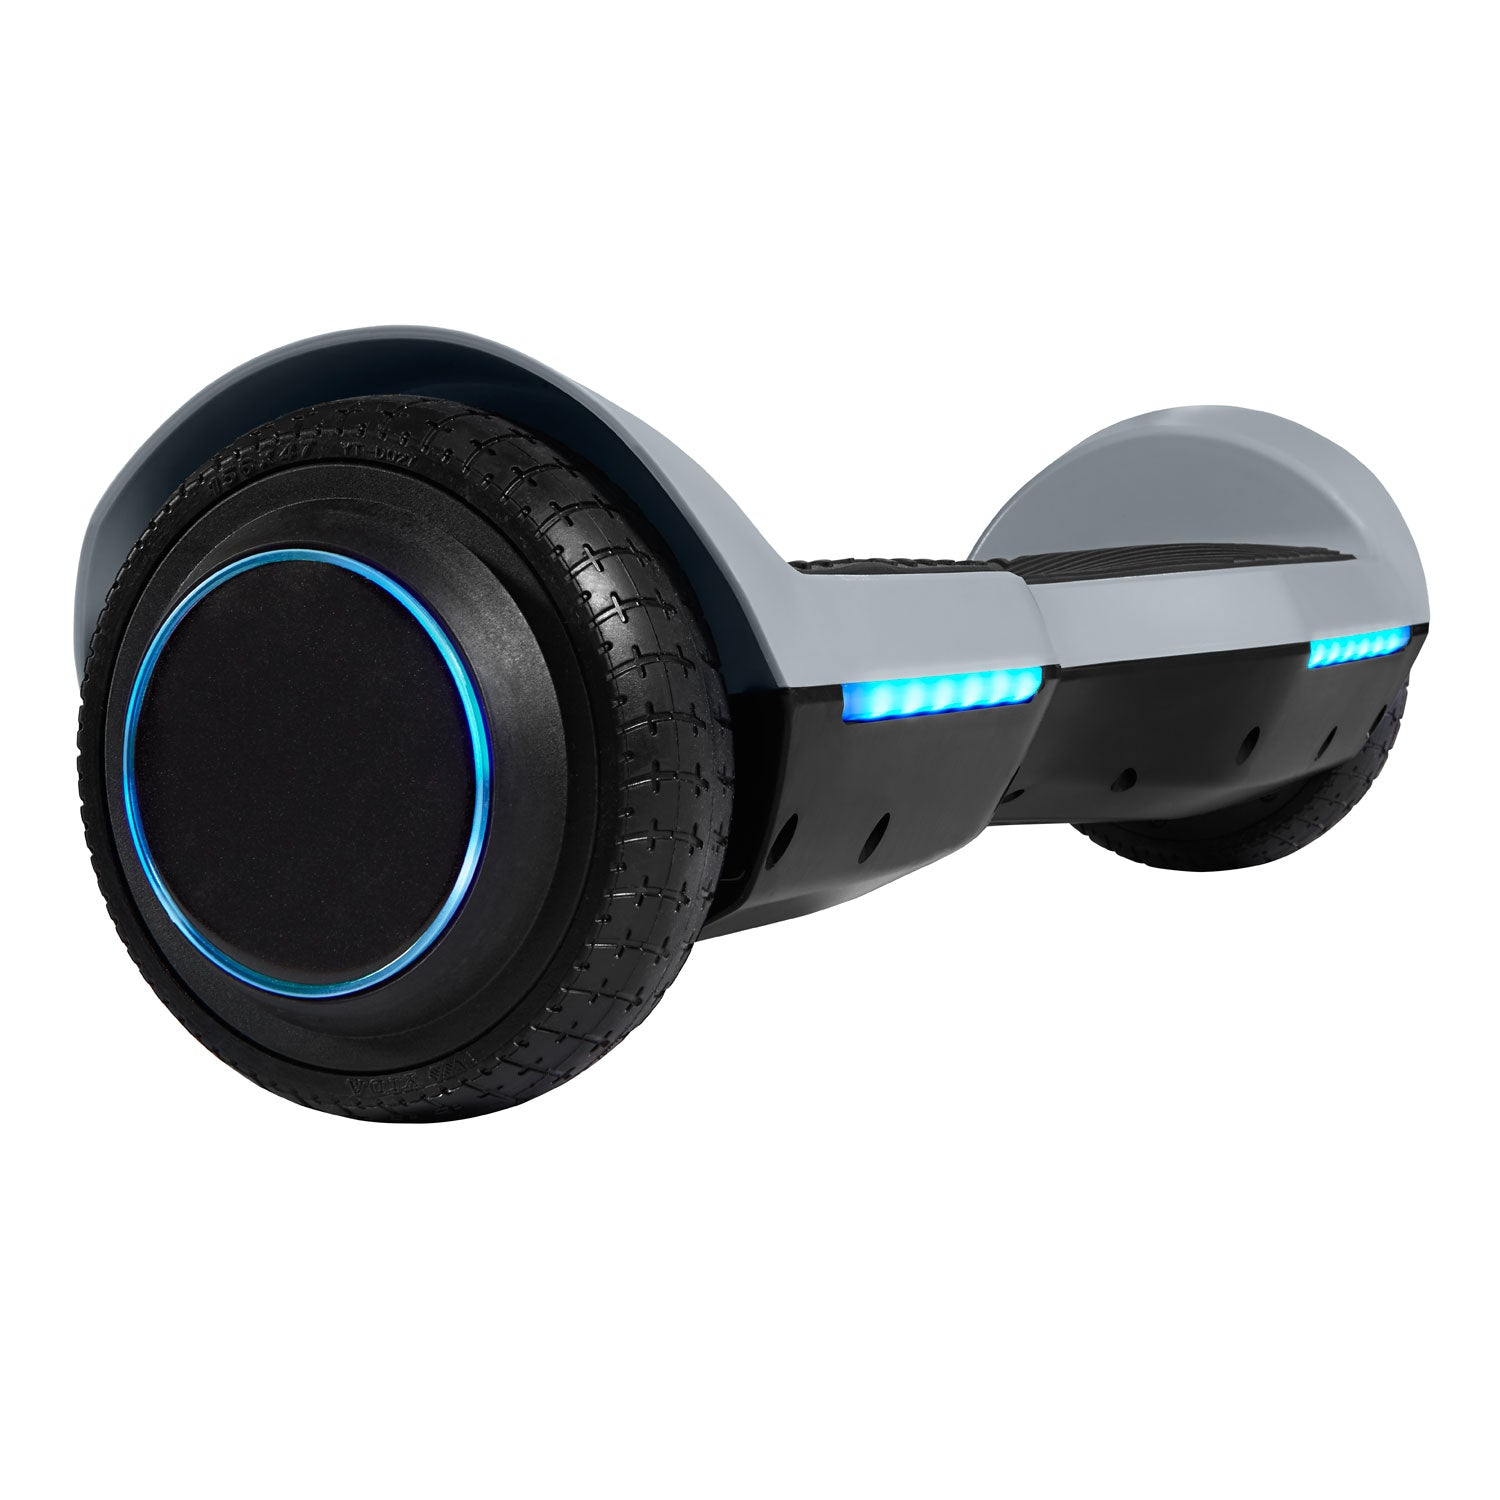 gray Main image srx bluetooth hoverboard